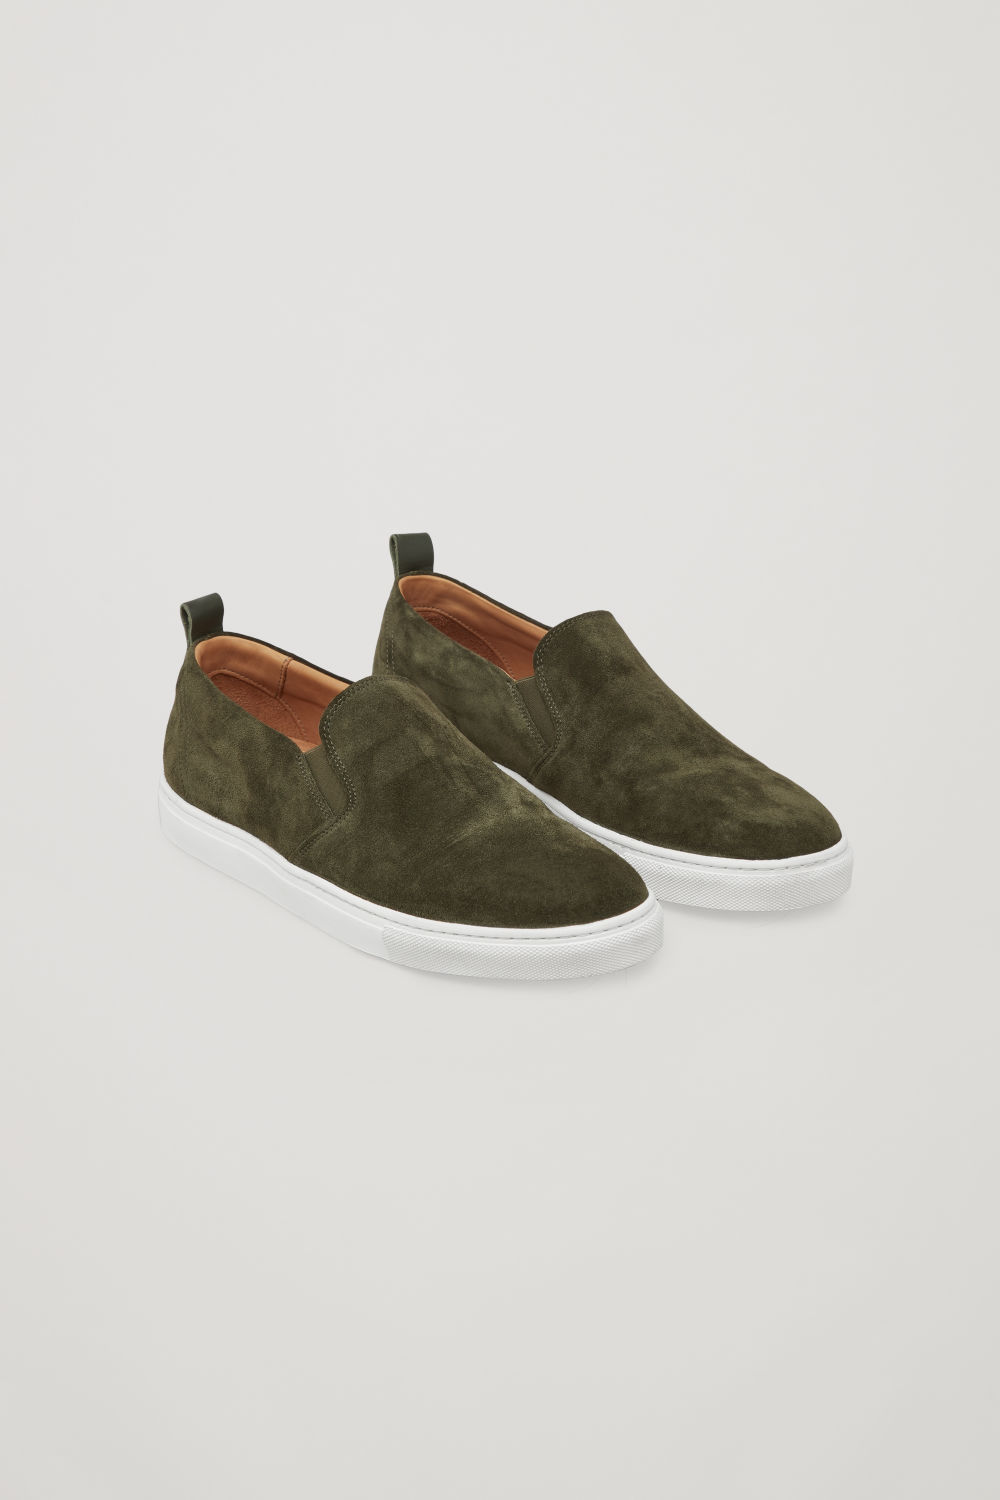 SUEDE SLIP-ON SNEAKERS